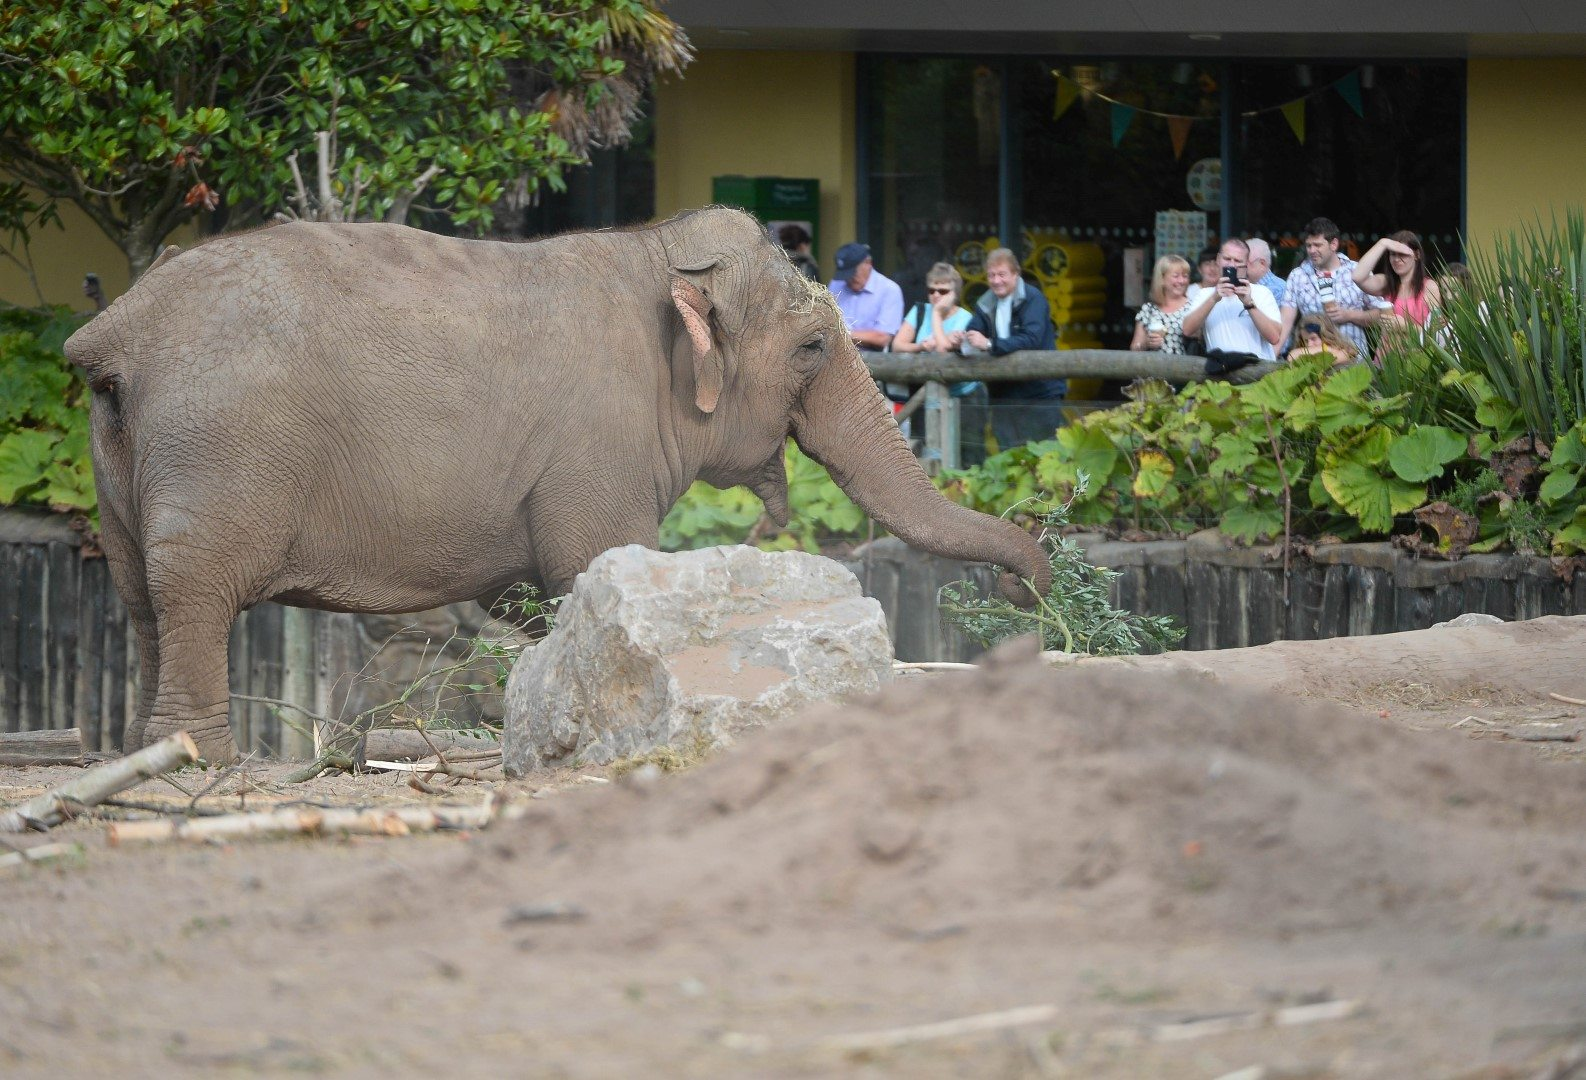 Elephant and visitors at Chester Zoo